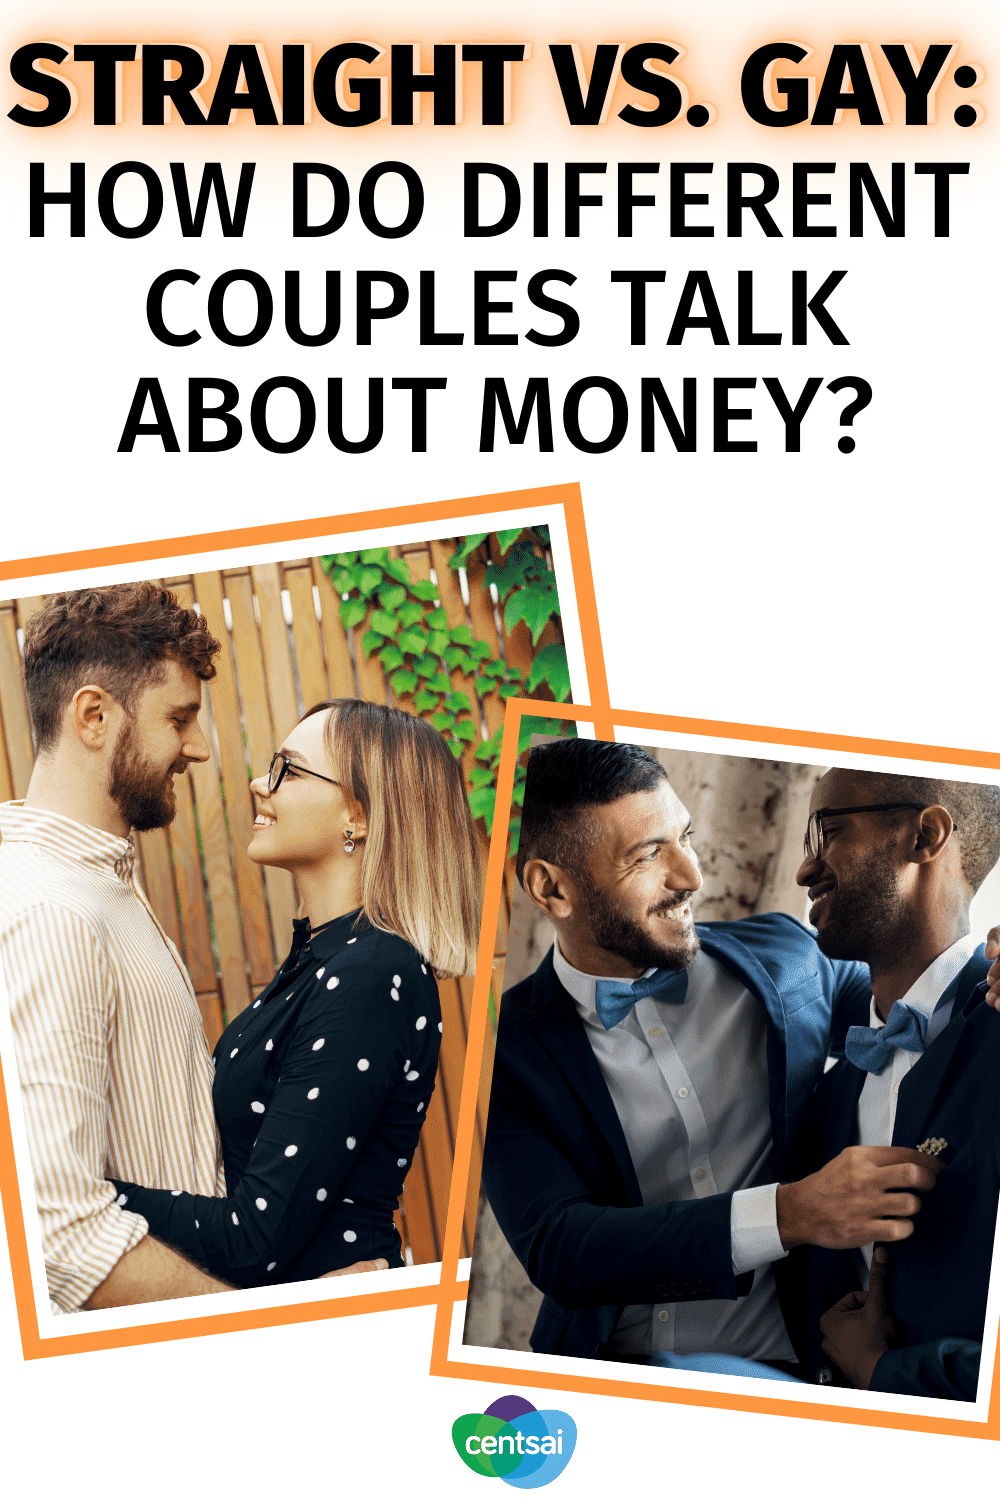 Straight vs. Gay How Do Different Couples Talk About Money